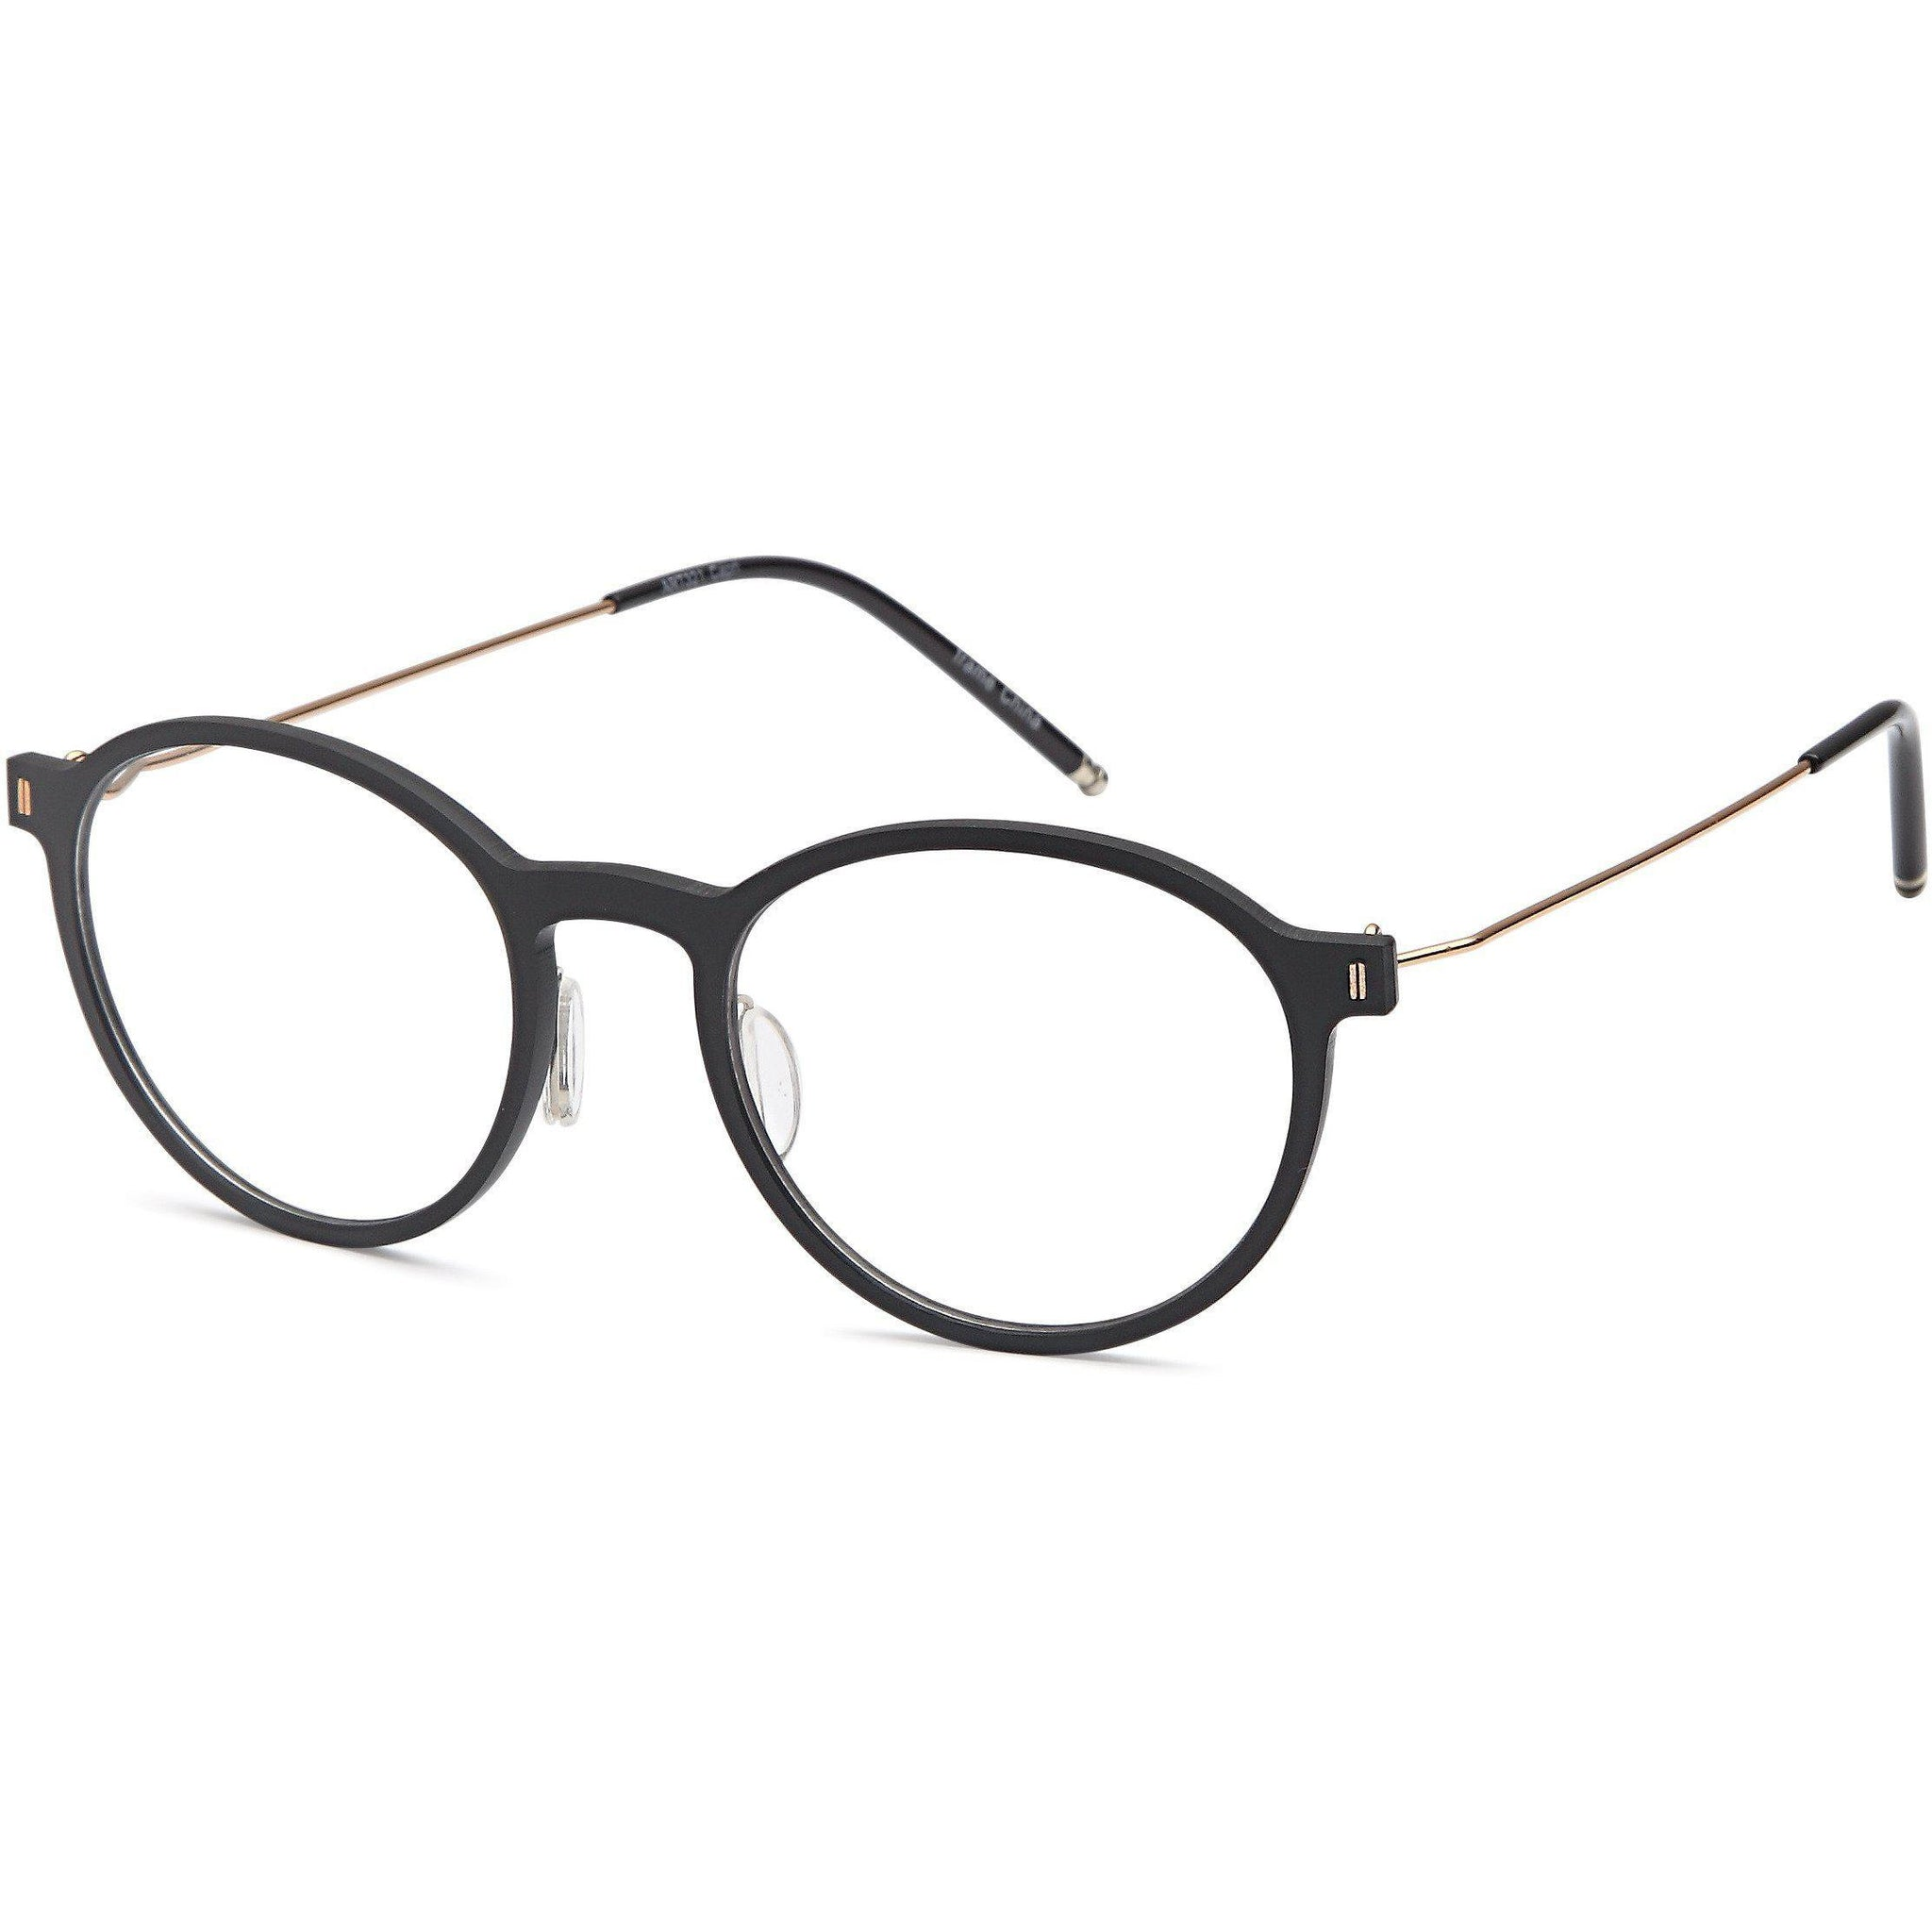 Sophistics Prescription Glasses ART 321 Frame